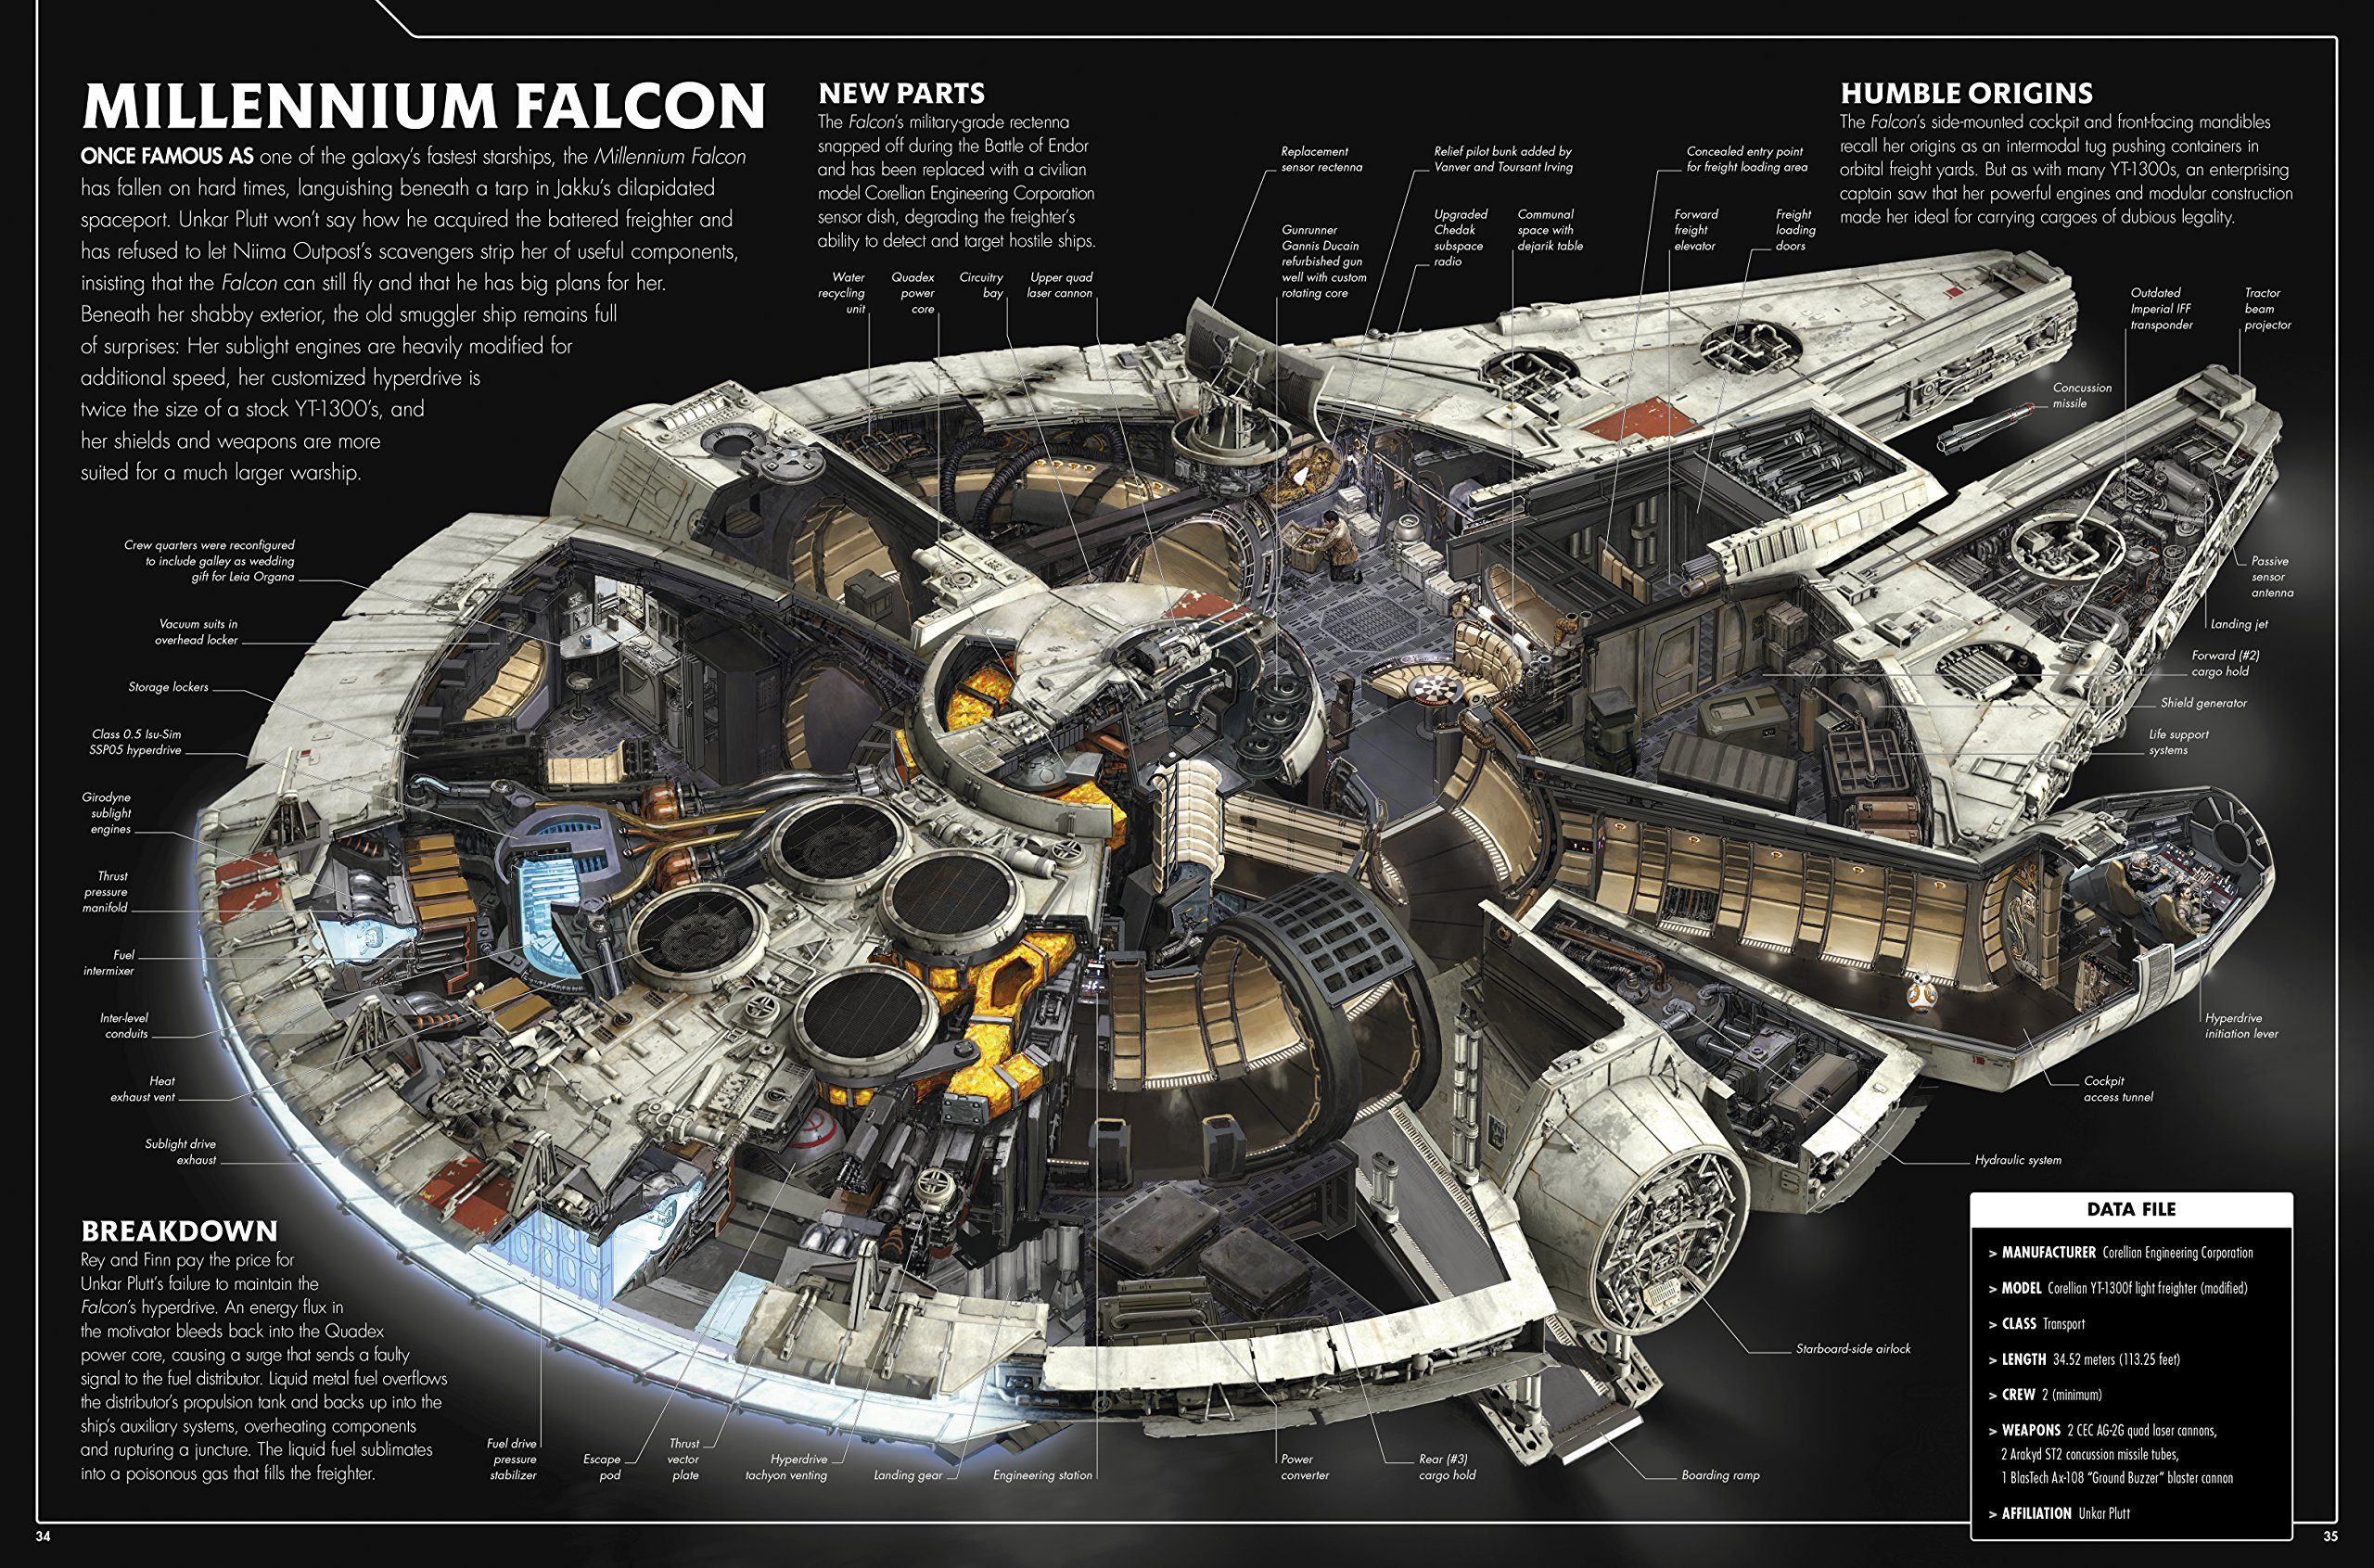 Star_Wars_The_Force_Awakens_Incredible_Cross-Sections_35_Millennium_Falcon.jpg